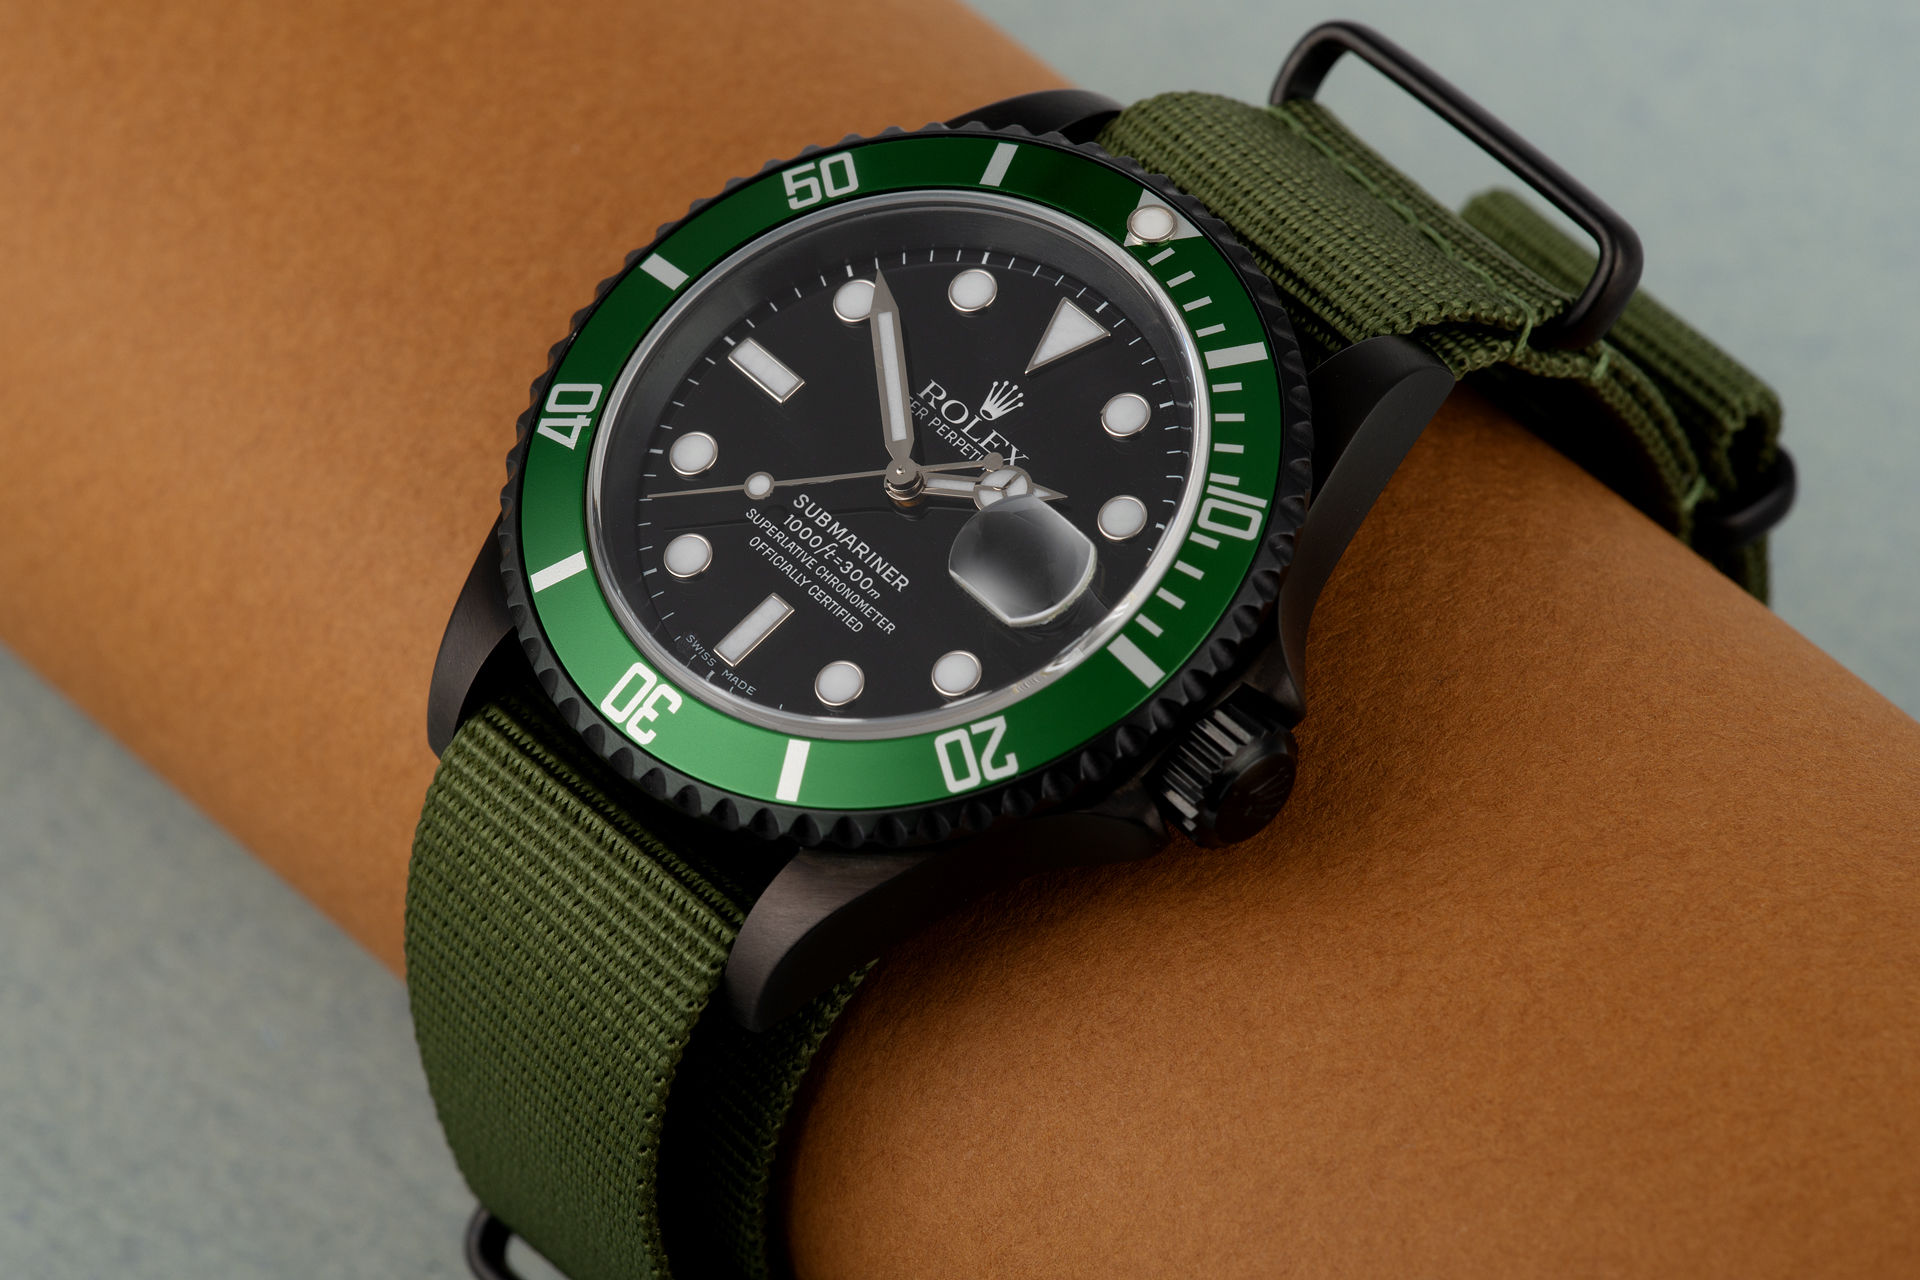 ref 16610LV | Special Blackened Edition | Rolex Submariner Date